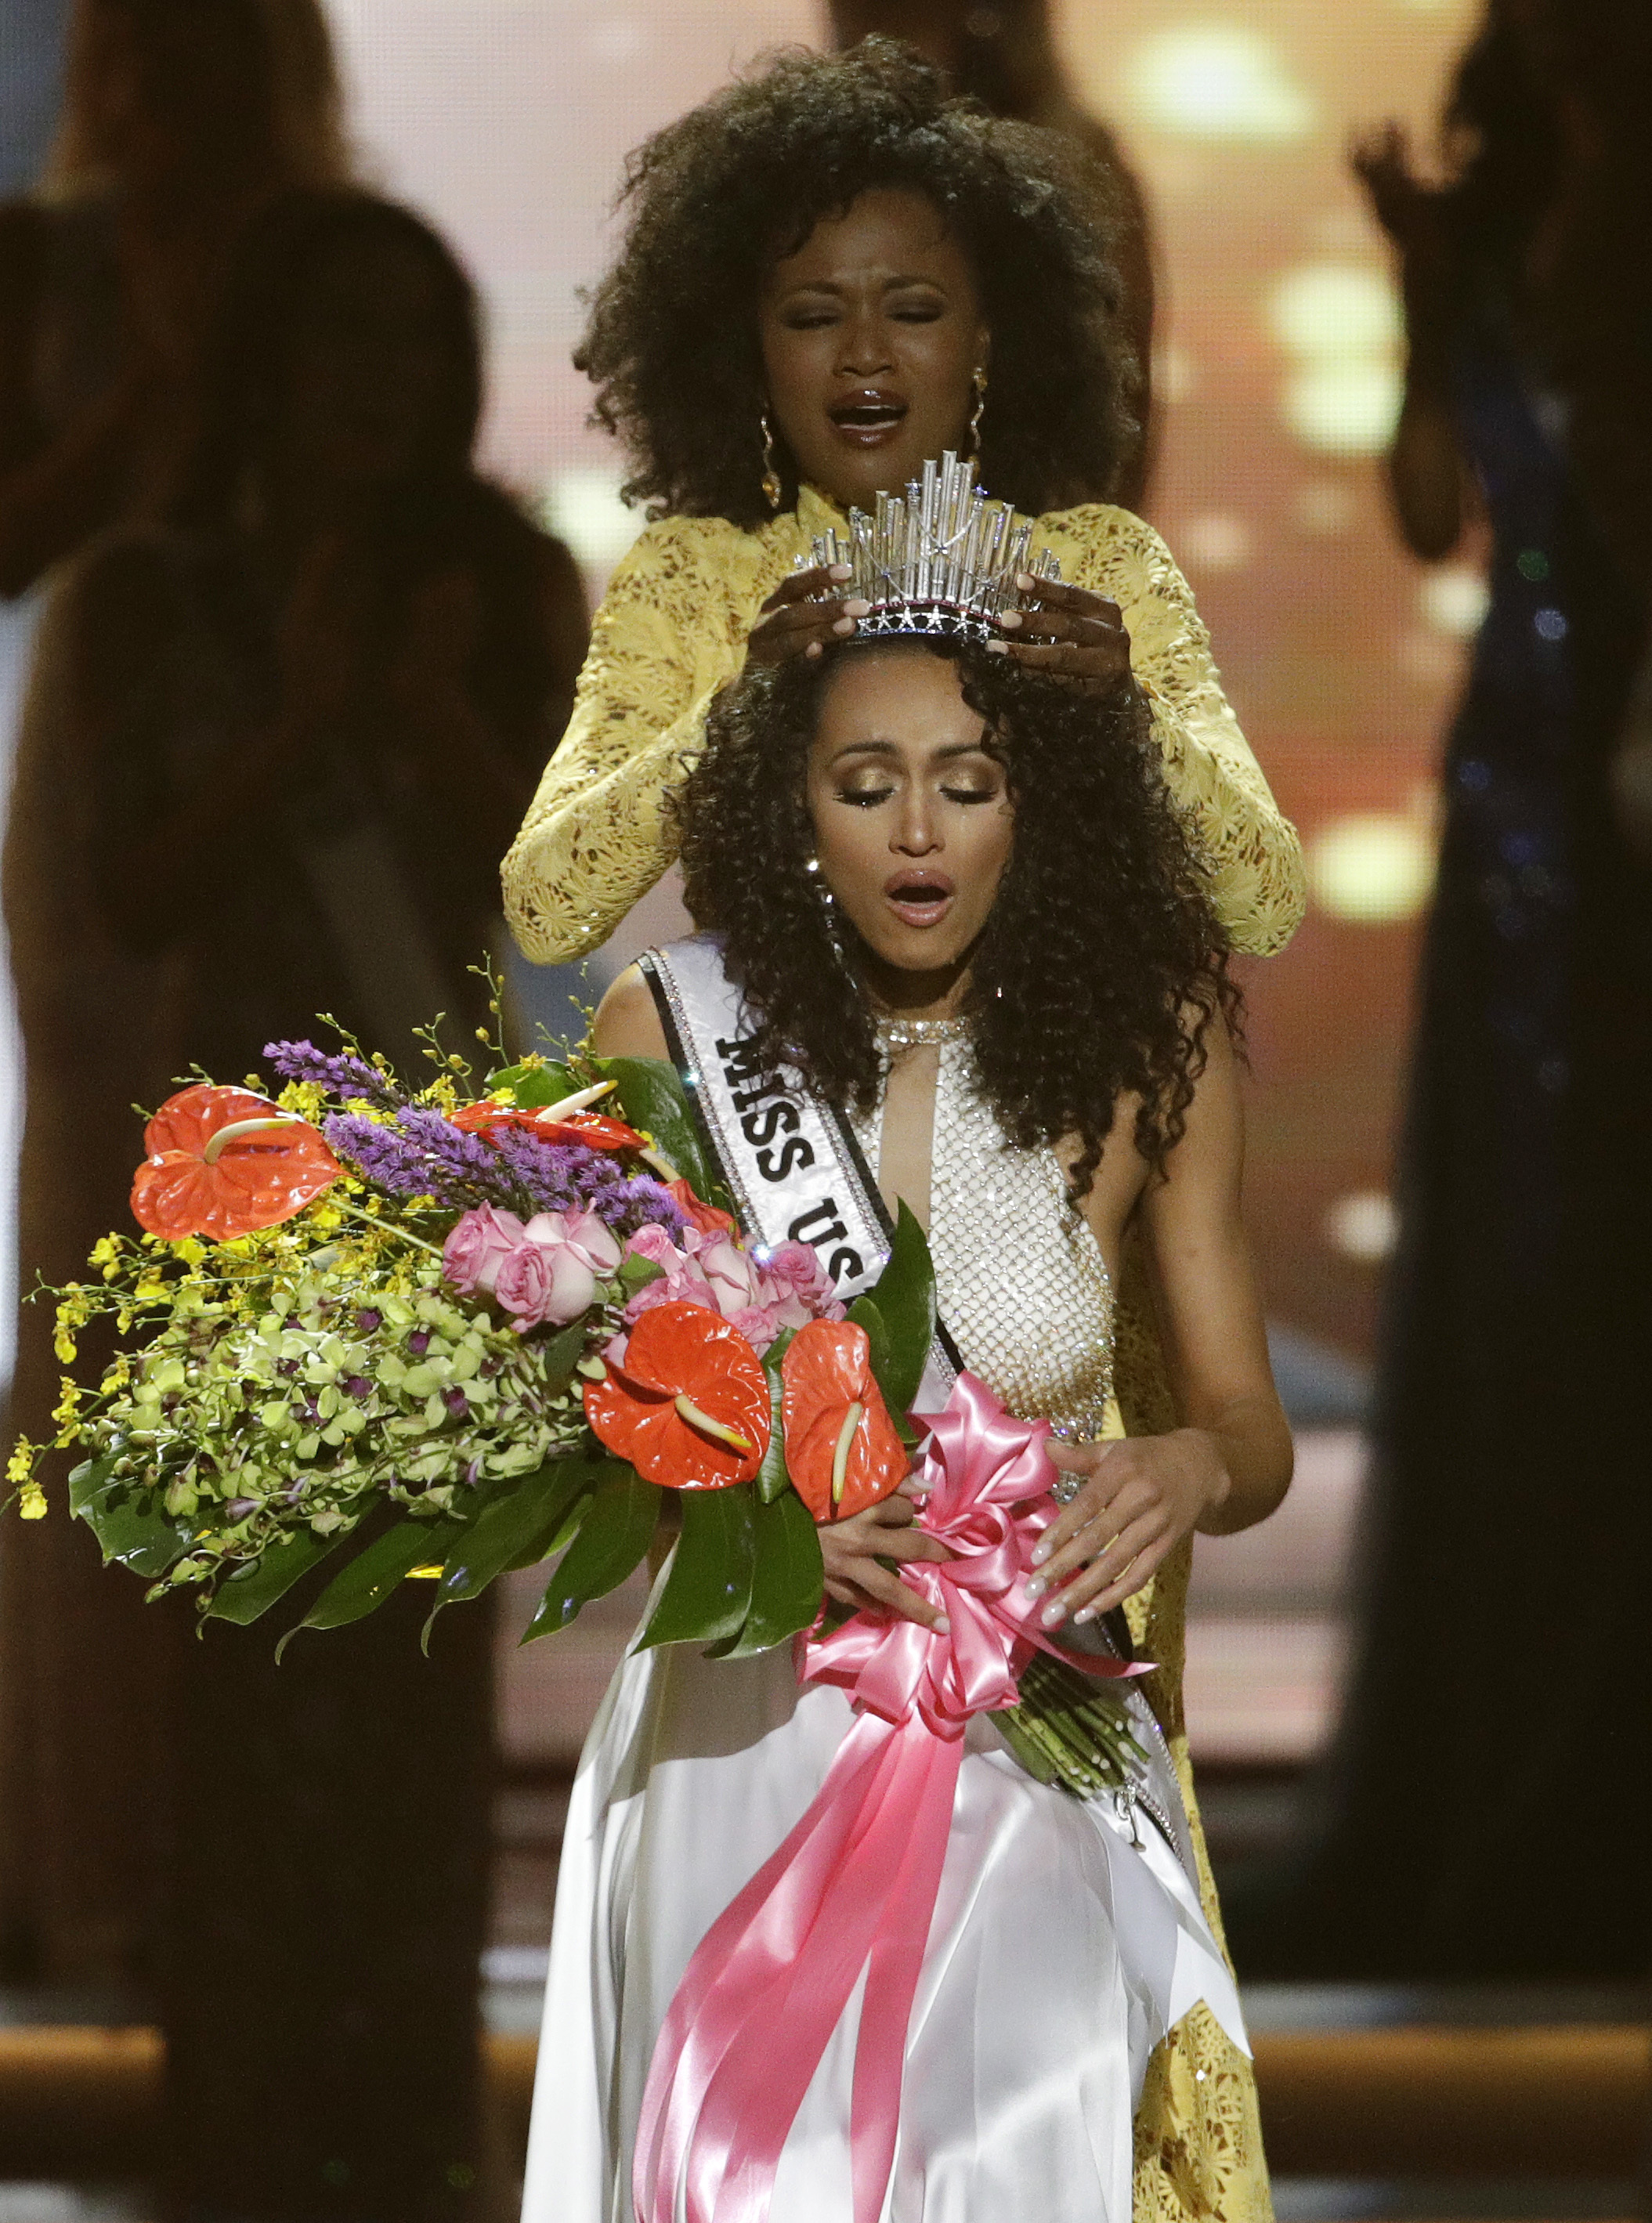 Miss USA-4 Miss District of Columbia USA Kara McCullough reacts as she is crowned the new Miss USA by former Miss USA Deshauna Barber during the Miss USA contest Sunday, May 14, 2017, in Las Vegas. (AP Photo/John Locher)